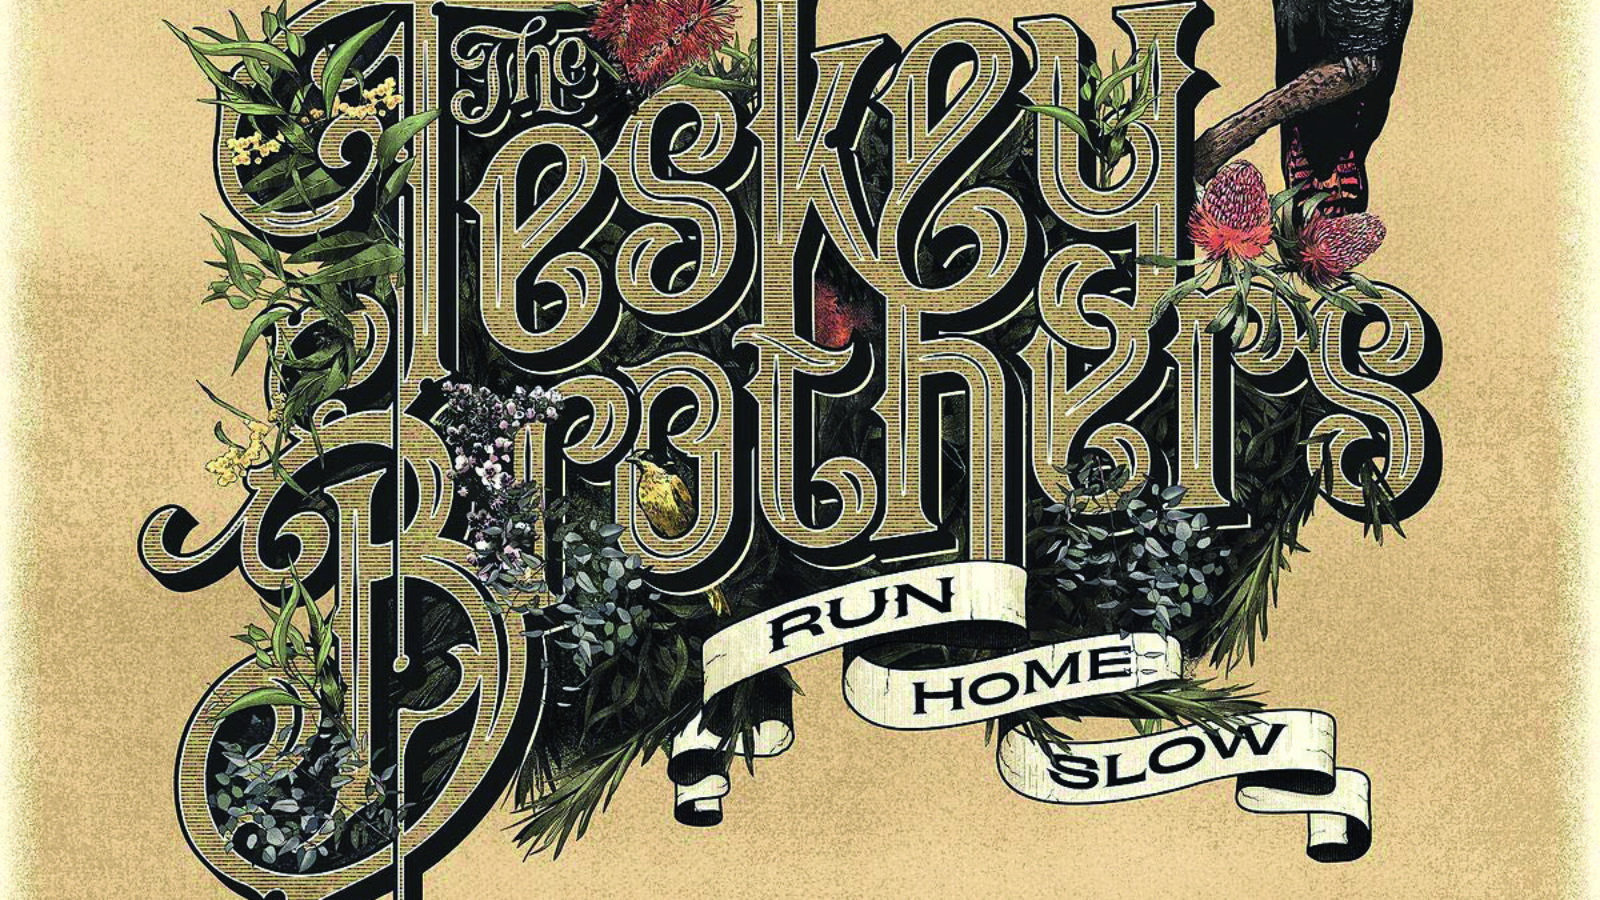 The Teskey Brother - Run Home slow